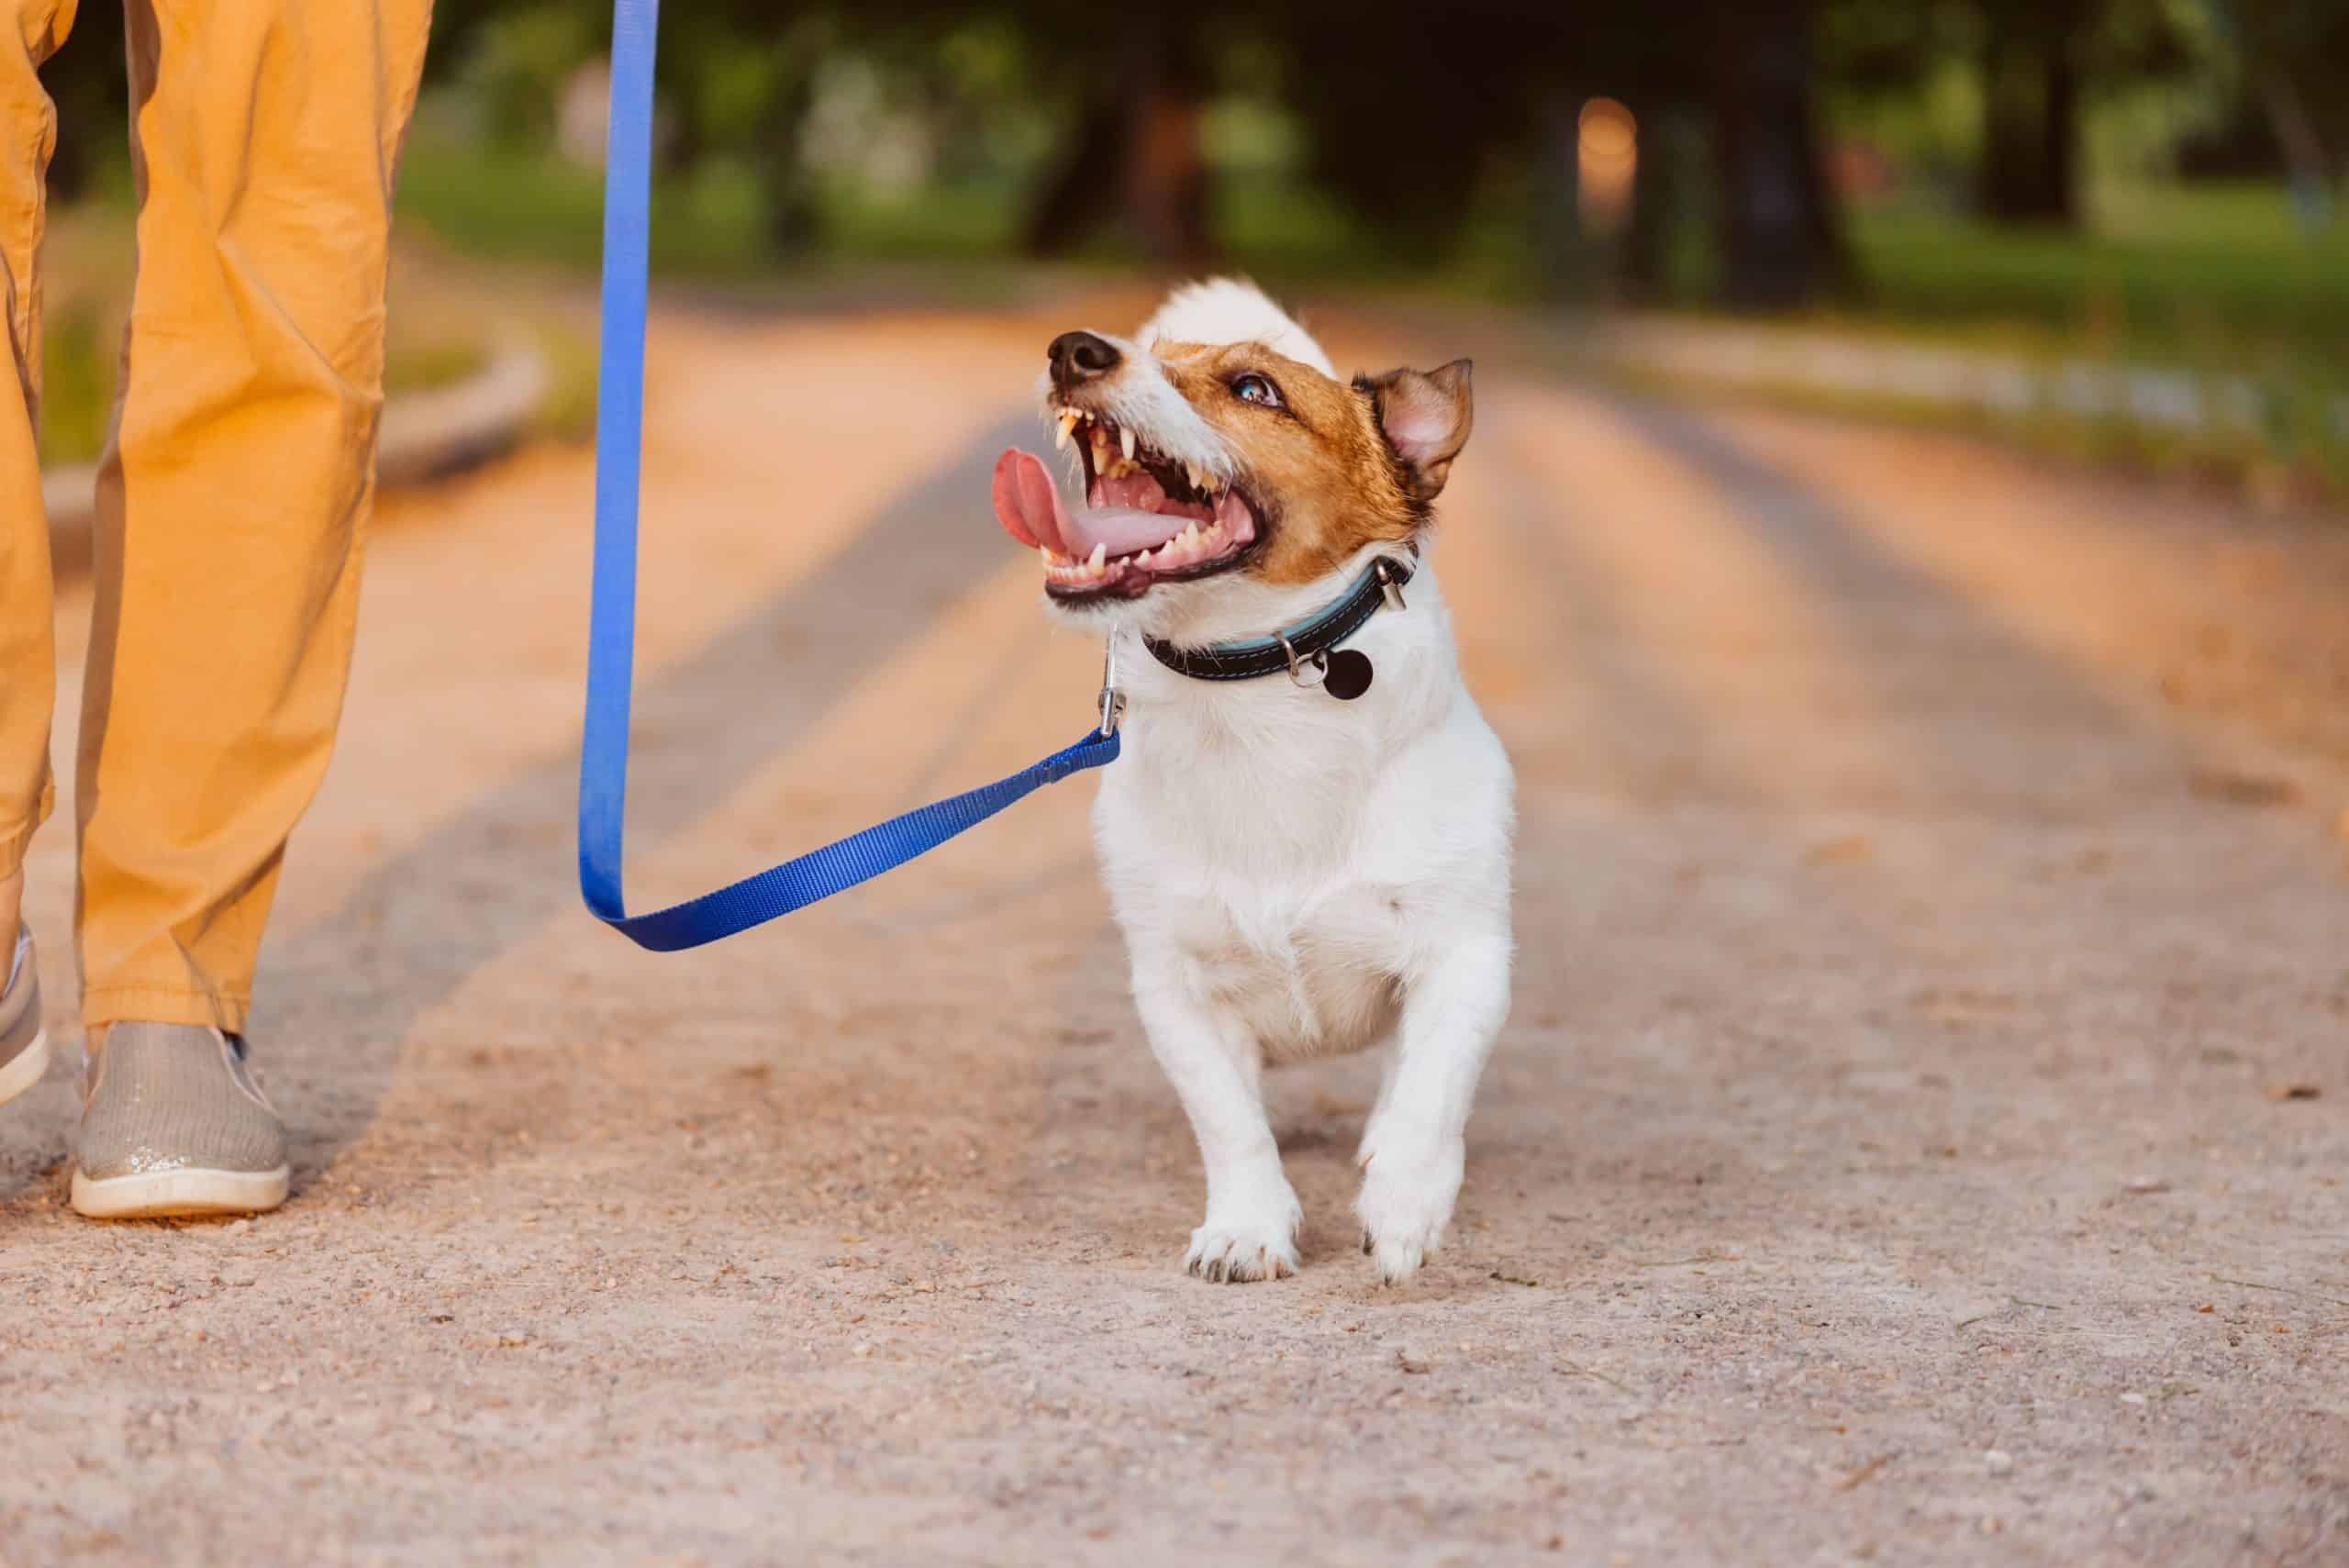 Jack Russell terrier walks with owner. When you introduce dog to strangers, be sure to control the situation, reward good behavior, and keep interactions short.